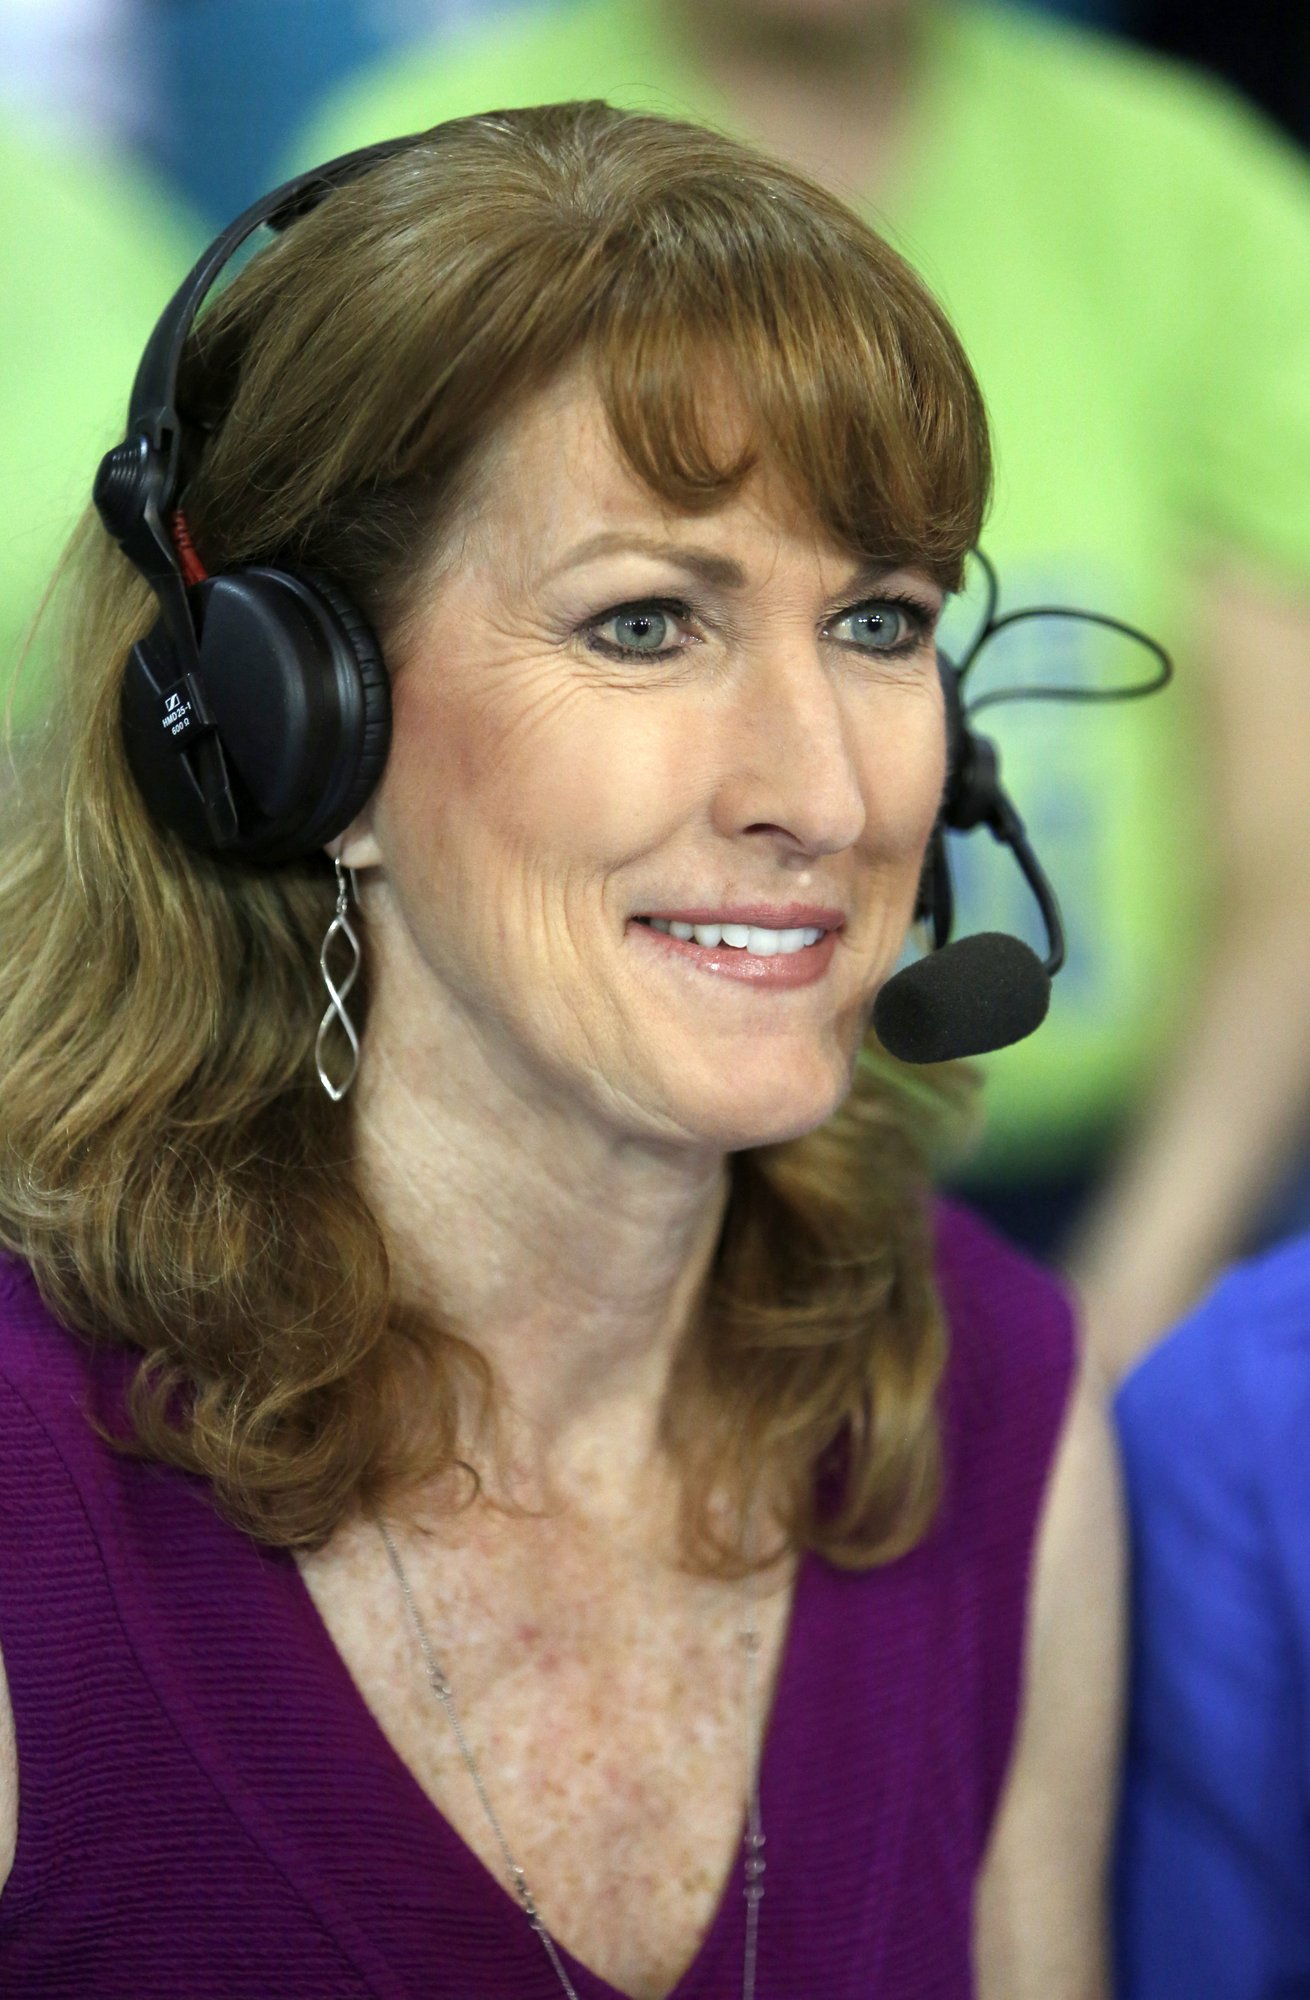 Analyst Deb Antonelli raises over $80K for Special Olympics